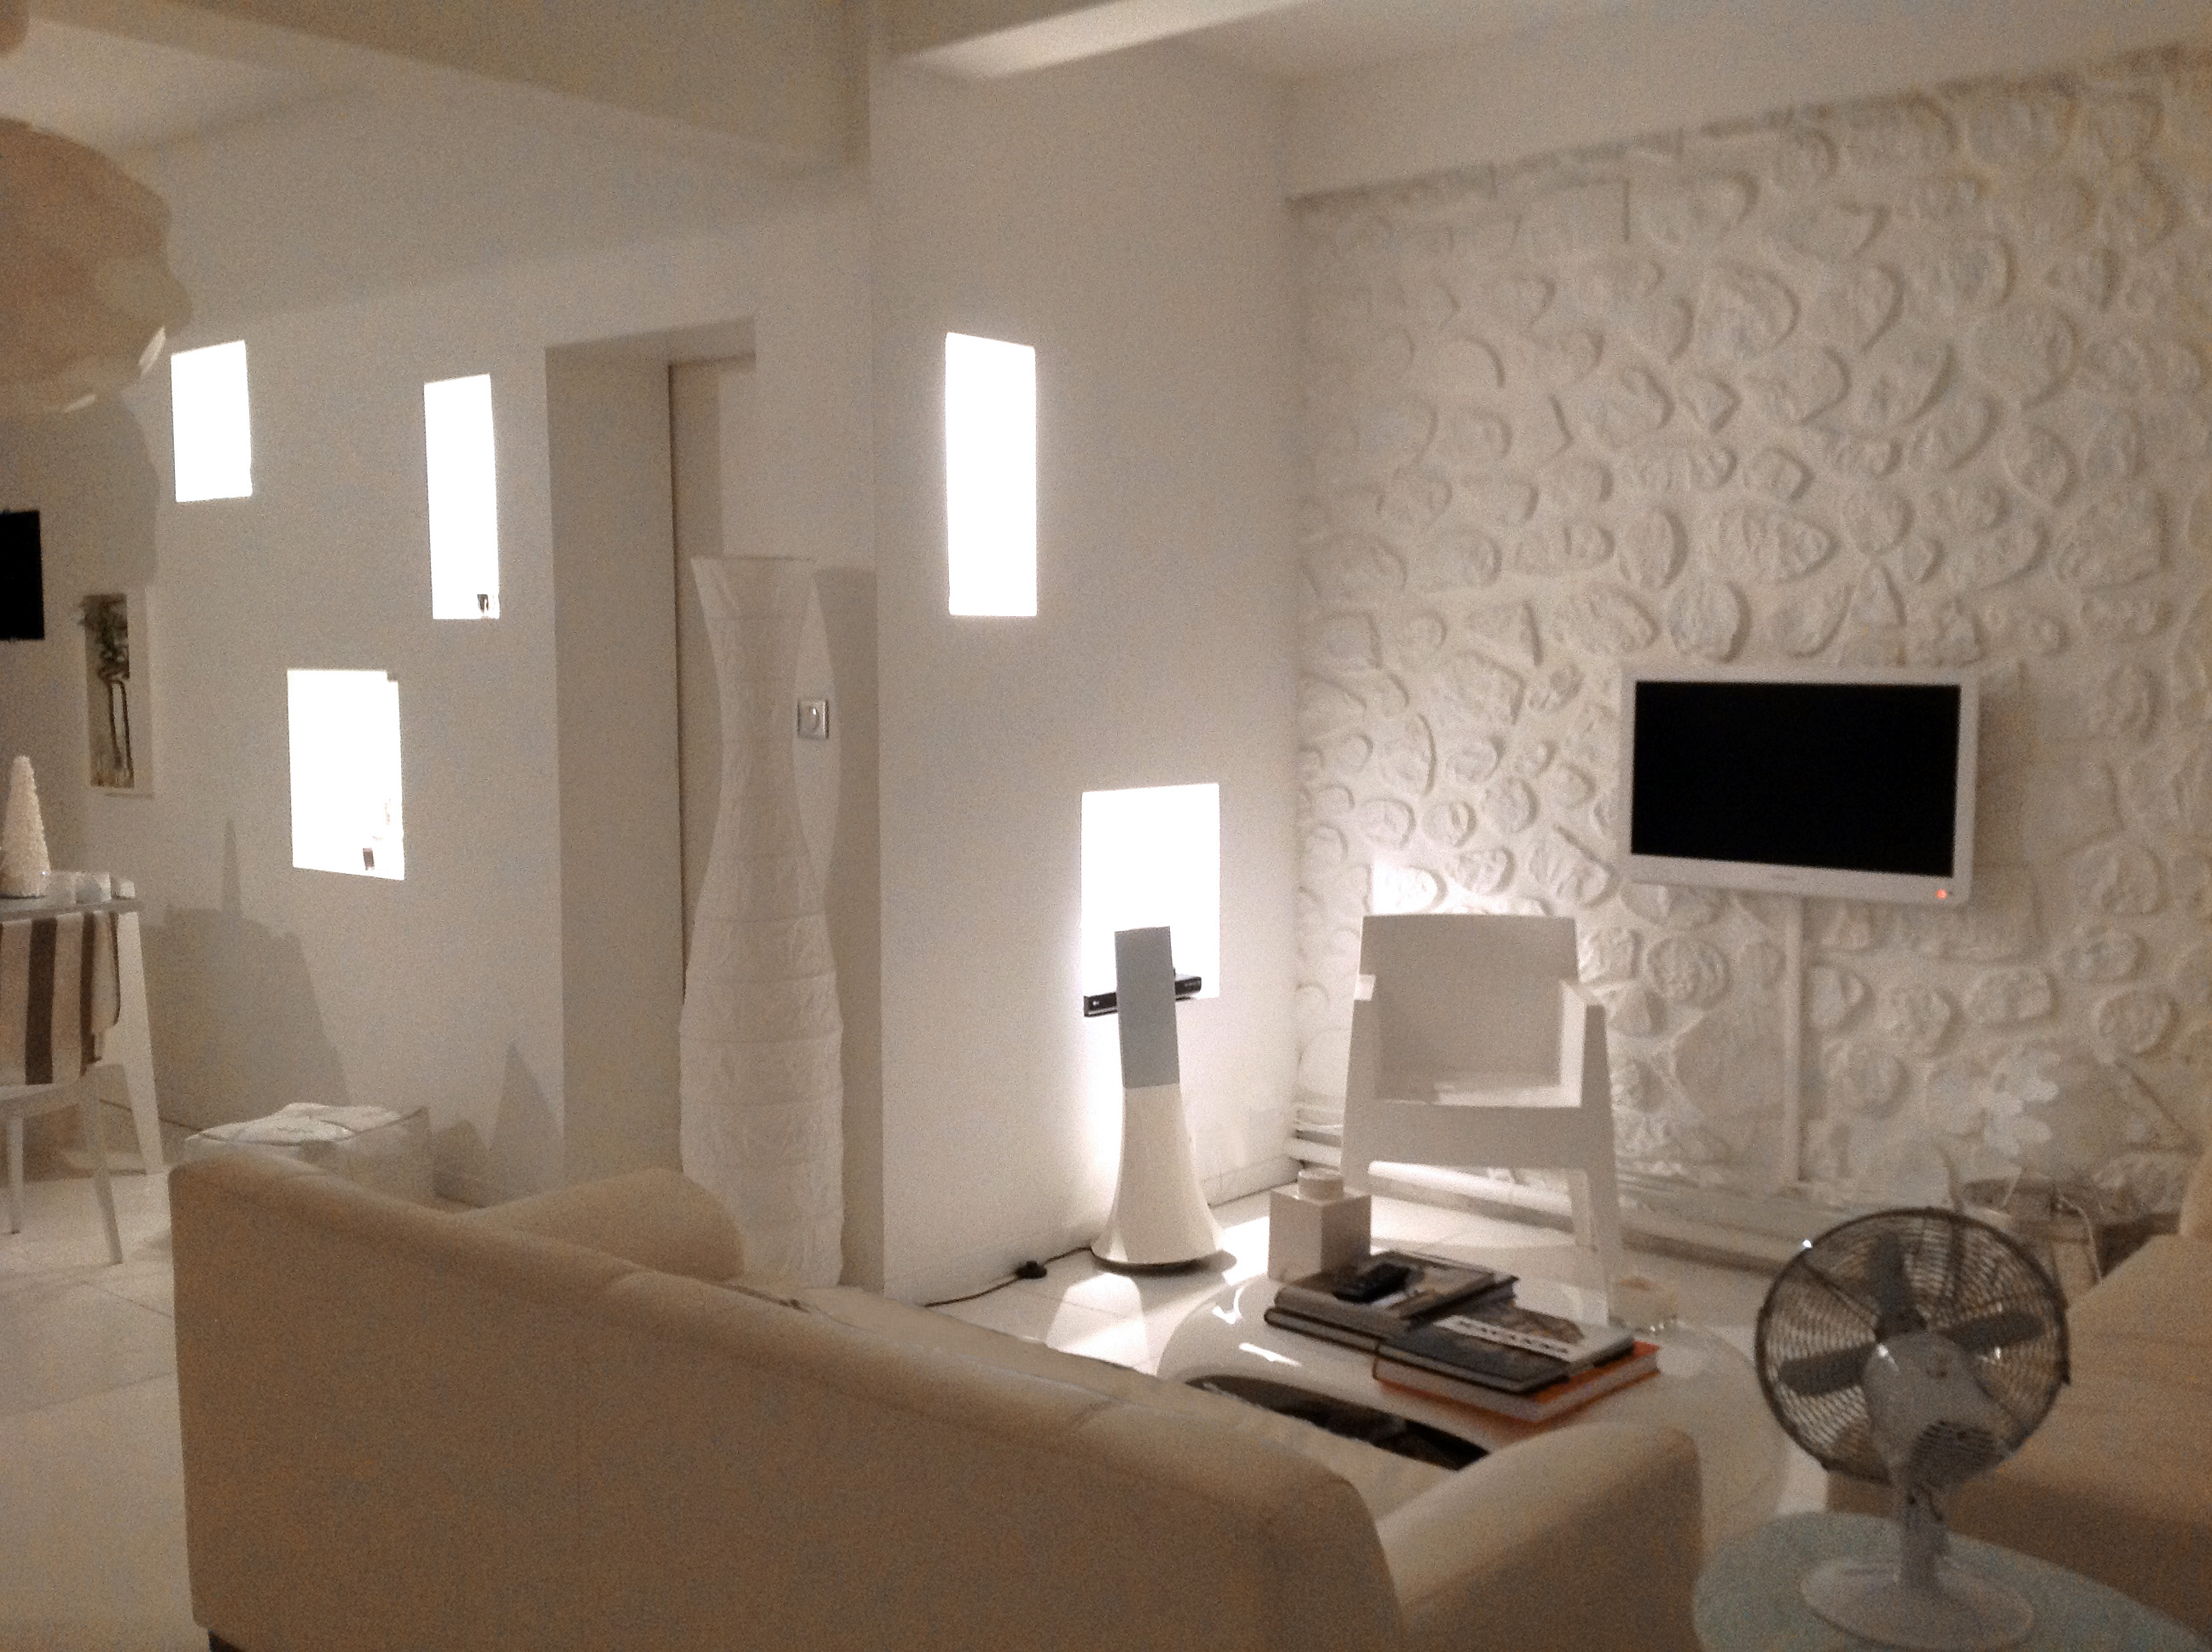 Mod le d coration salon blanc for Modele deco interieur